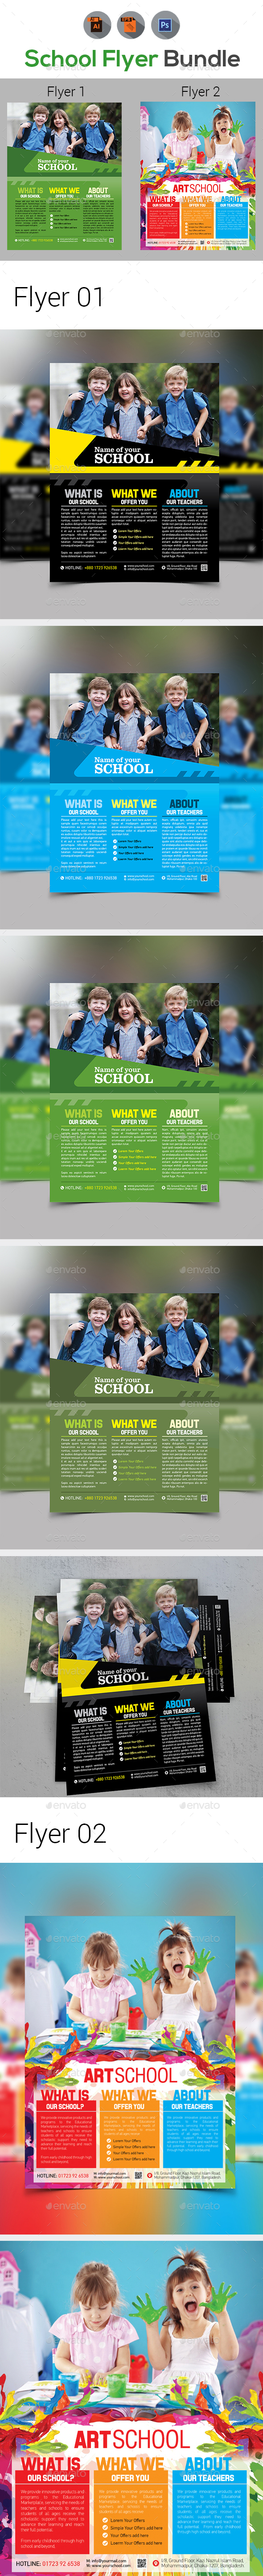 School Flyer Bundle - Corporate Flyers